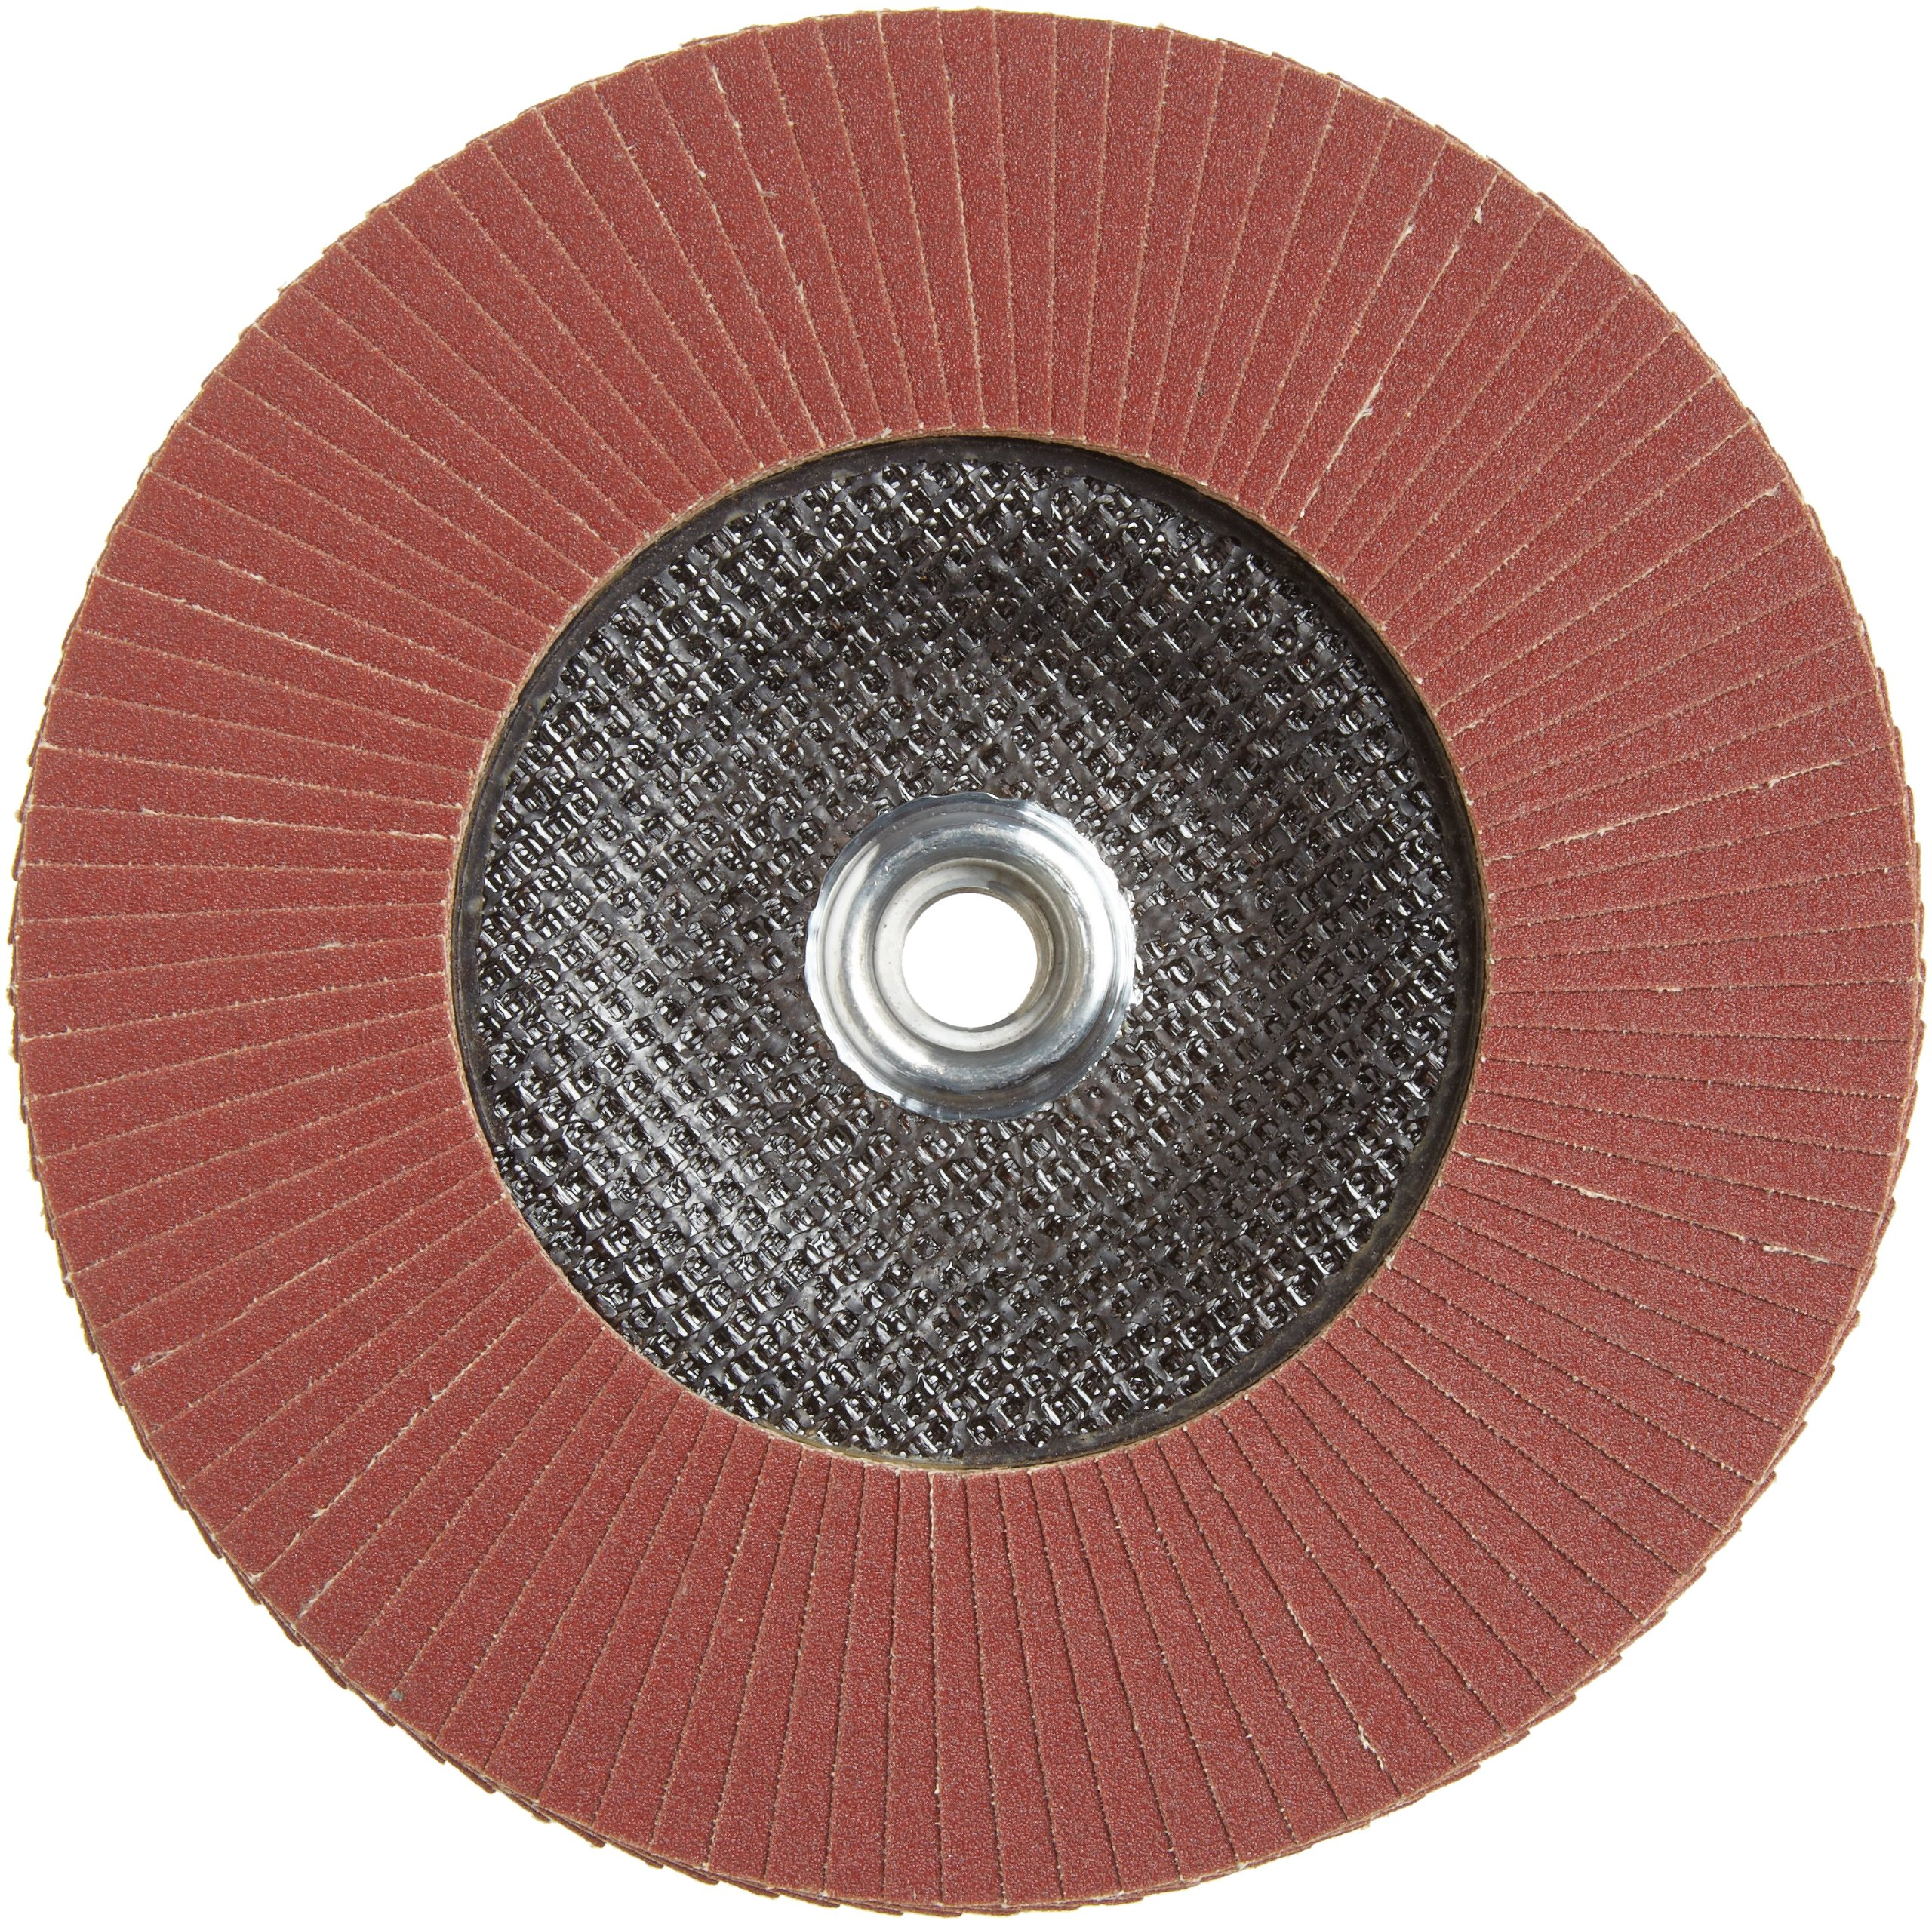 PFERD Polifan SG Abrasive Flap Disc, Type 27, Threaded Hole, Phenolic Resin Backing, Aluminum Oxide, 7'' Dia., 120 Grit (Pack of 1) by Pferd